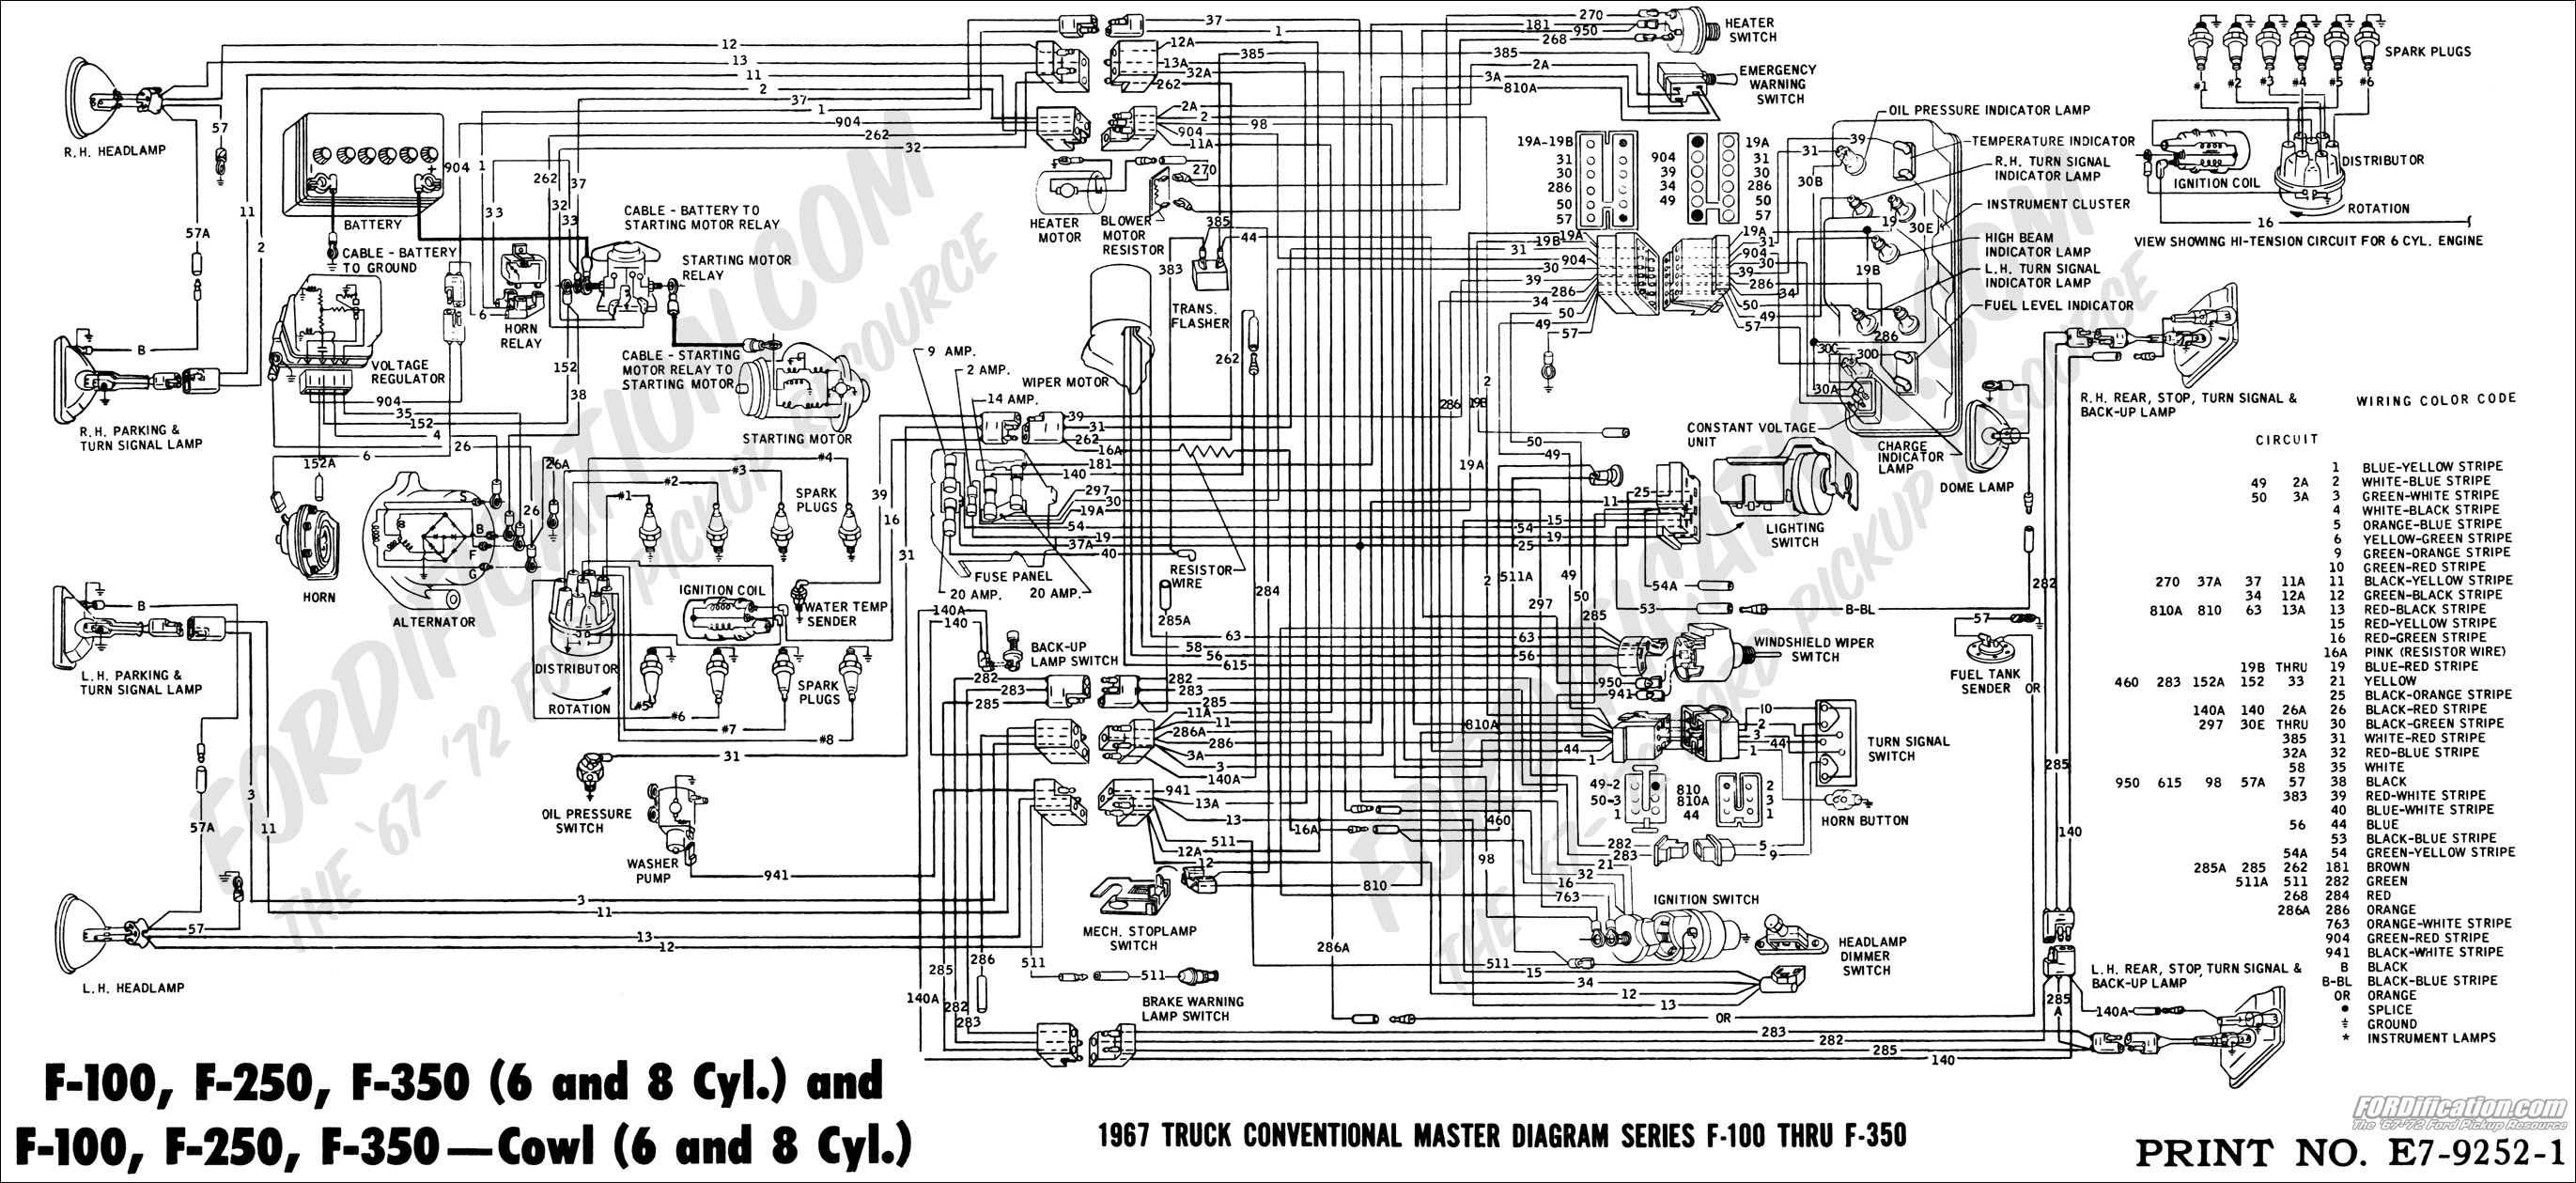 Ford Wiring Schematic - Wiring Diagram Database on sincgars radio configurations diagrams, series and parallel circuits diagrams, pinout diagrams, internet of things diagrams, switch diagrams, troubleshooting diagrams, electronic circuit diagrams, honda motorcycle repair diagrams, lighting diagrams, gmc fuse box diagrams, battery diagrams, smart car diagrams, led circuit diagrams, engine diagrams, transformer diagrams, hvac diagrams, electrical diagrams, friendship bracelet diagrams, motor diagrams,